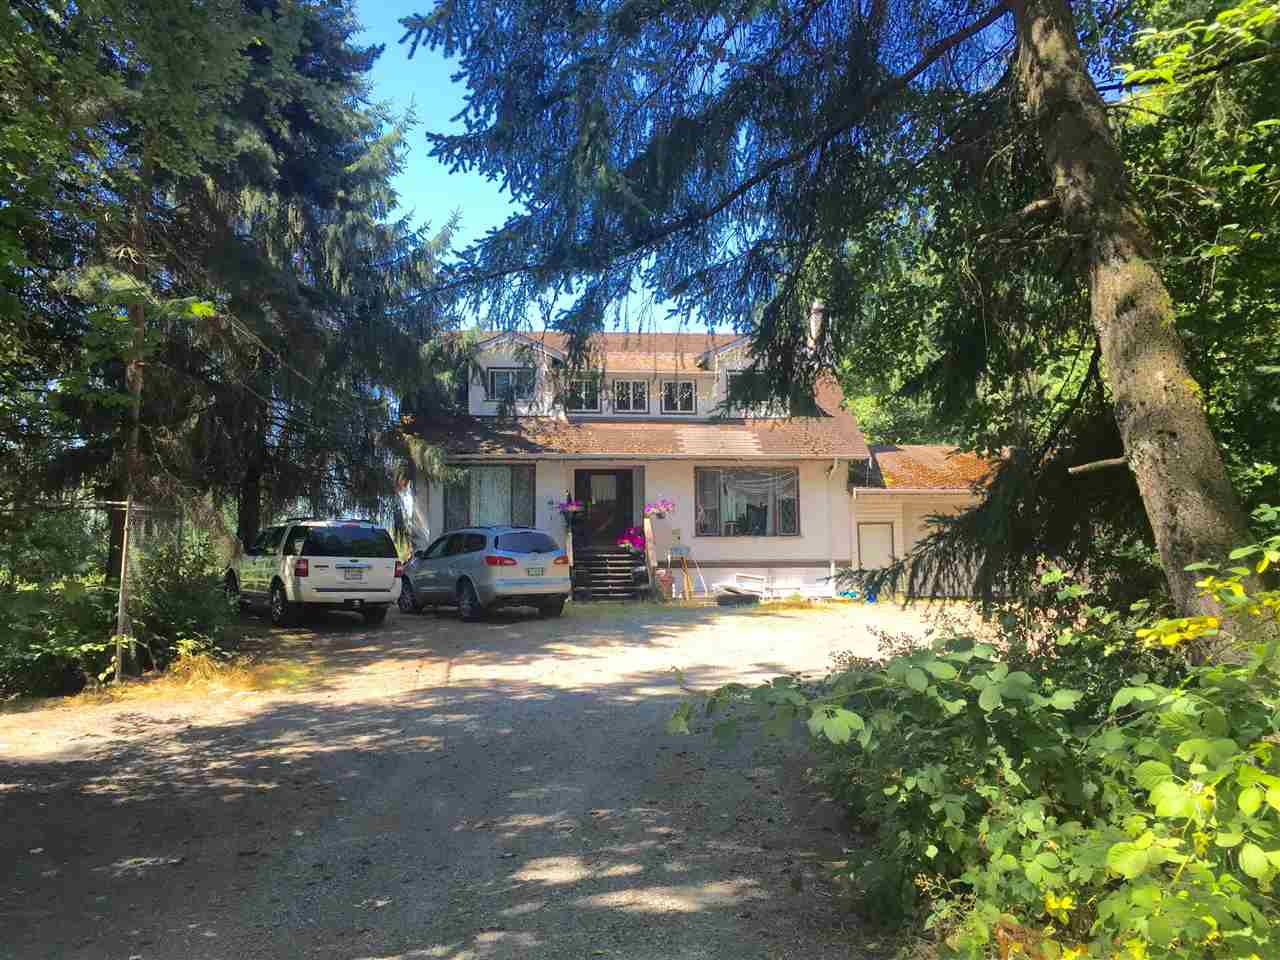 Investors Alert!! Opportunity Knocks! Great older home on 2.38 acres of rare development land located in one of the most desirable area of Aldergrove. City of Langley has approved and Adopted this property in new OCP for subdivision or residential lots! Don't let this pass you by, call now!